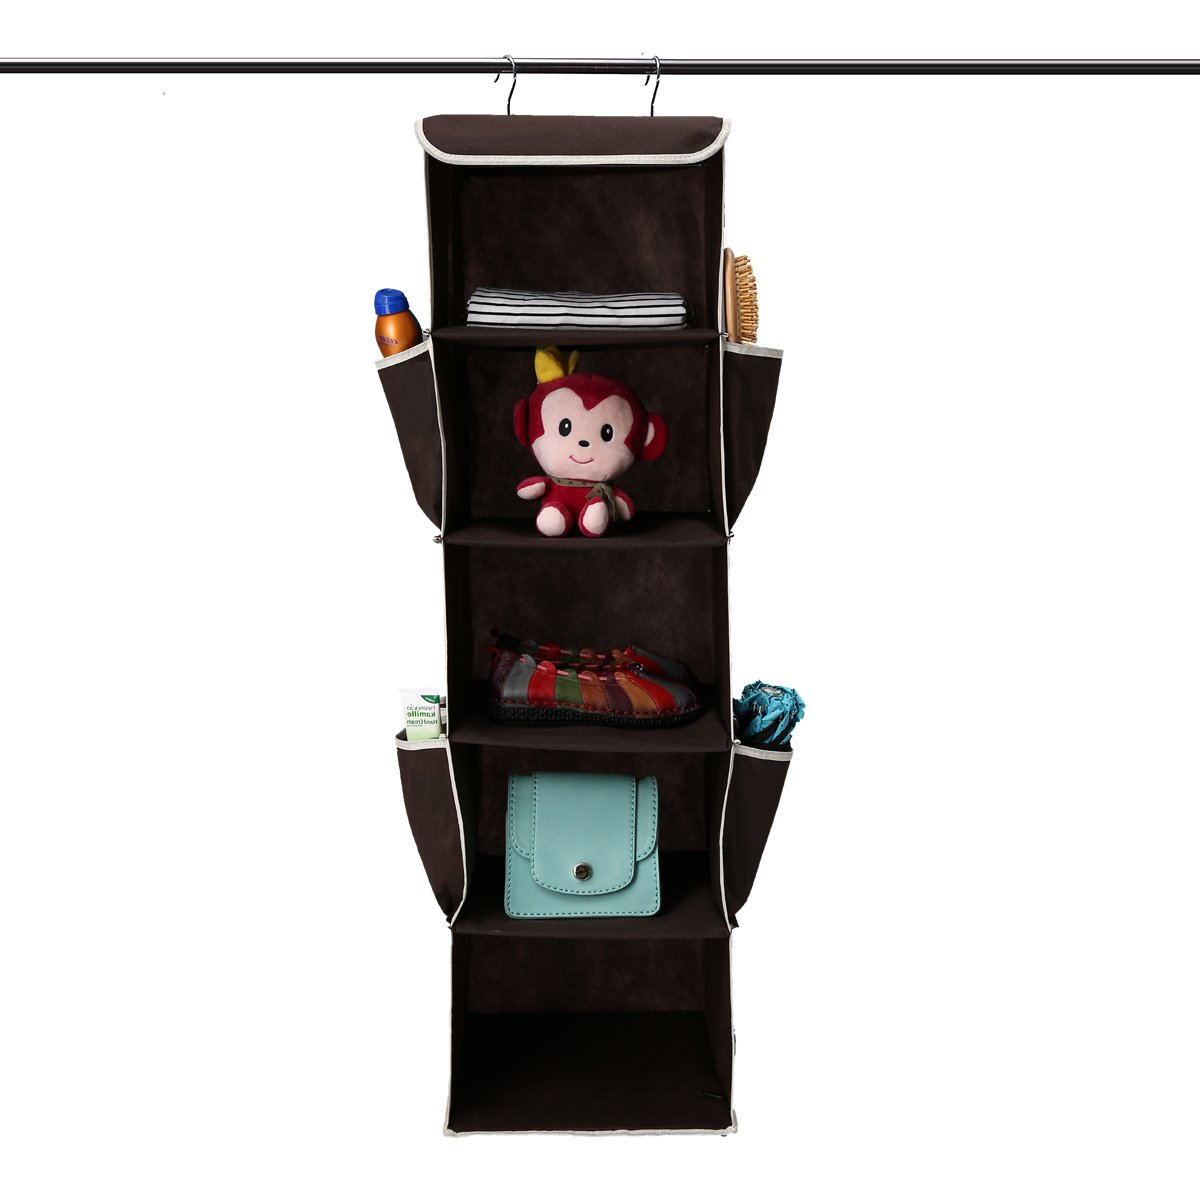 GEMITTO Heavy Duty 5 Shelves Hanging Wardrobe Closet Organizer Clothes Storage Box Accessory Shelves with Side Pockets Brown GEMITTOOHBUS3567812142